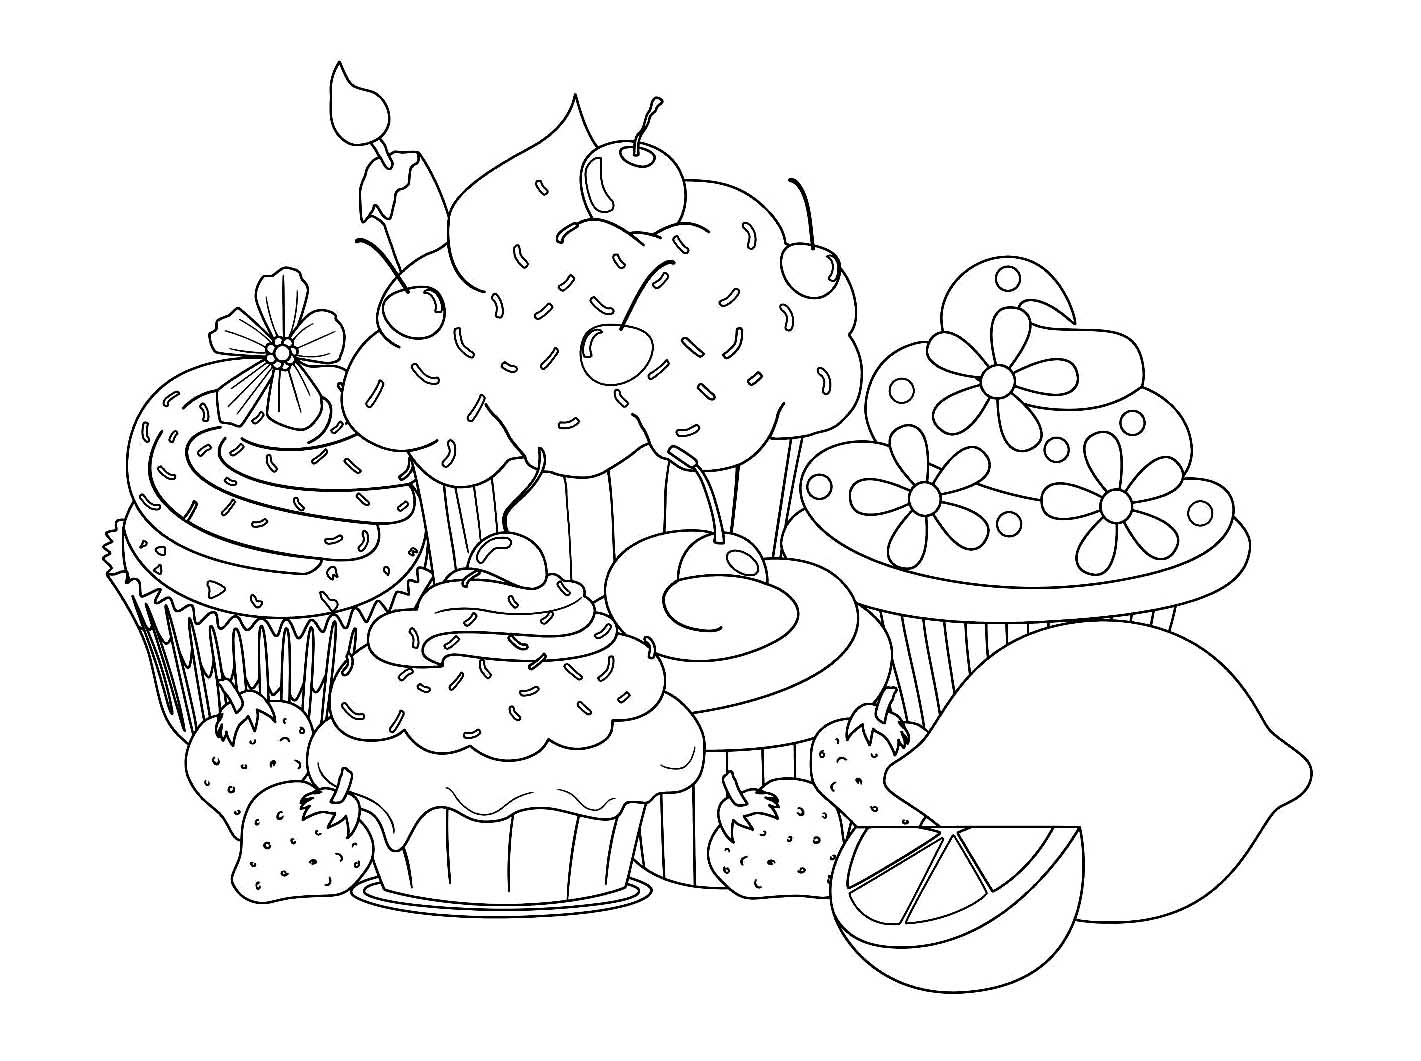 Beautiful sweet cupcake pagesFrom the gallery : Cup Cakes